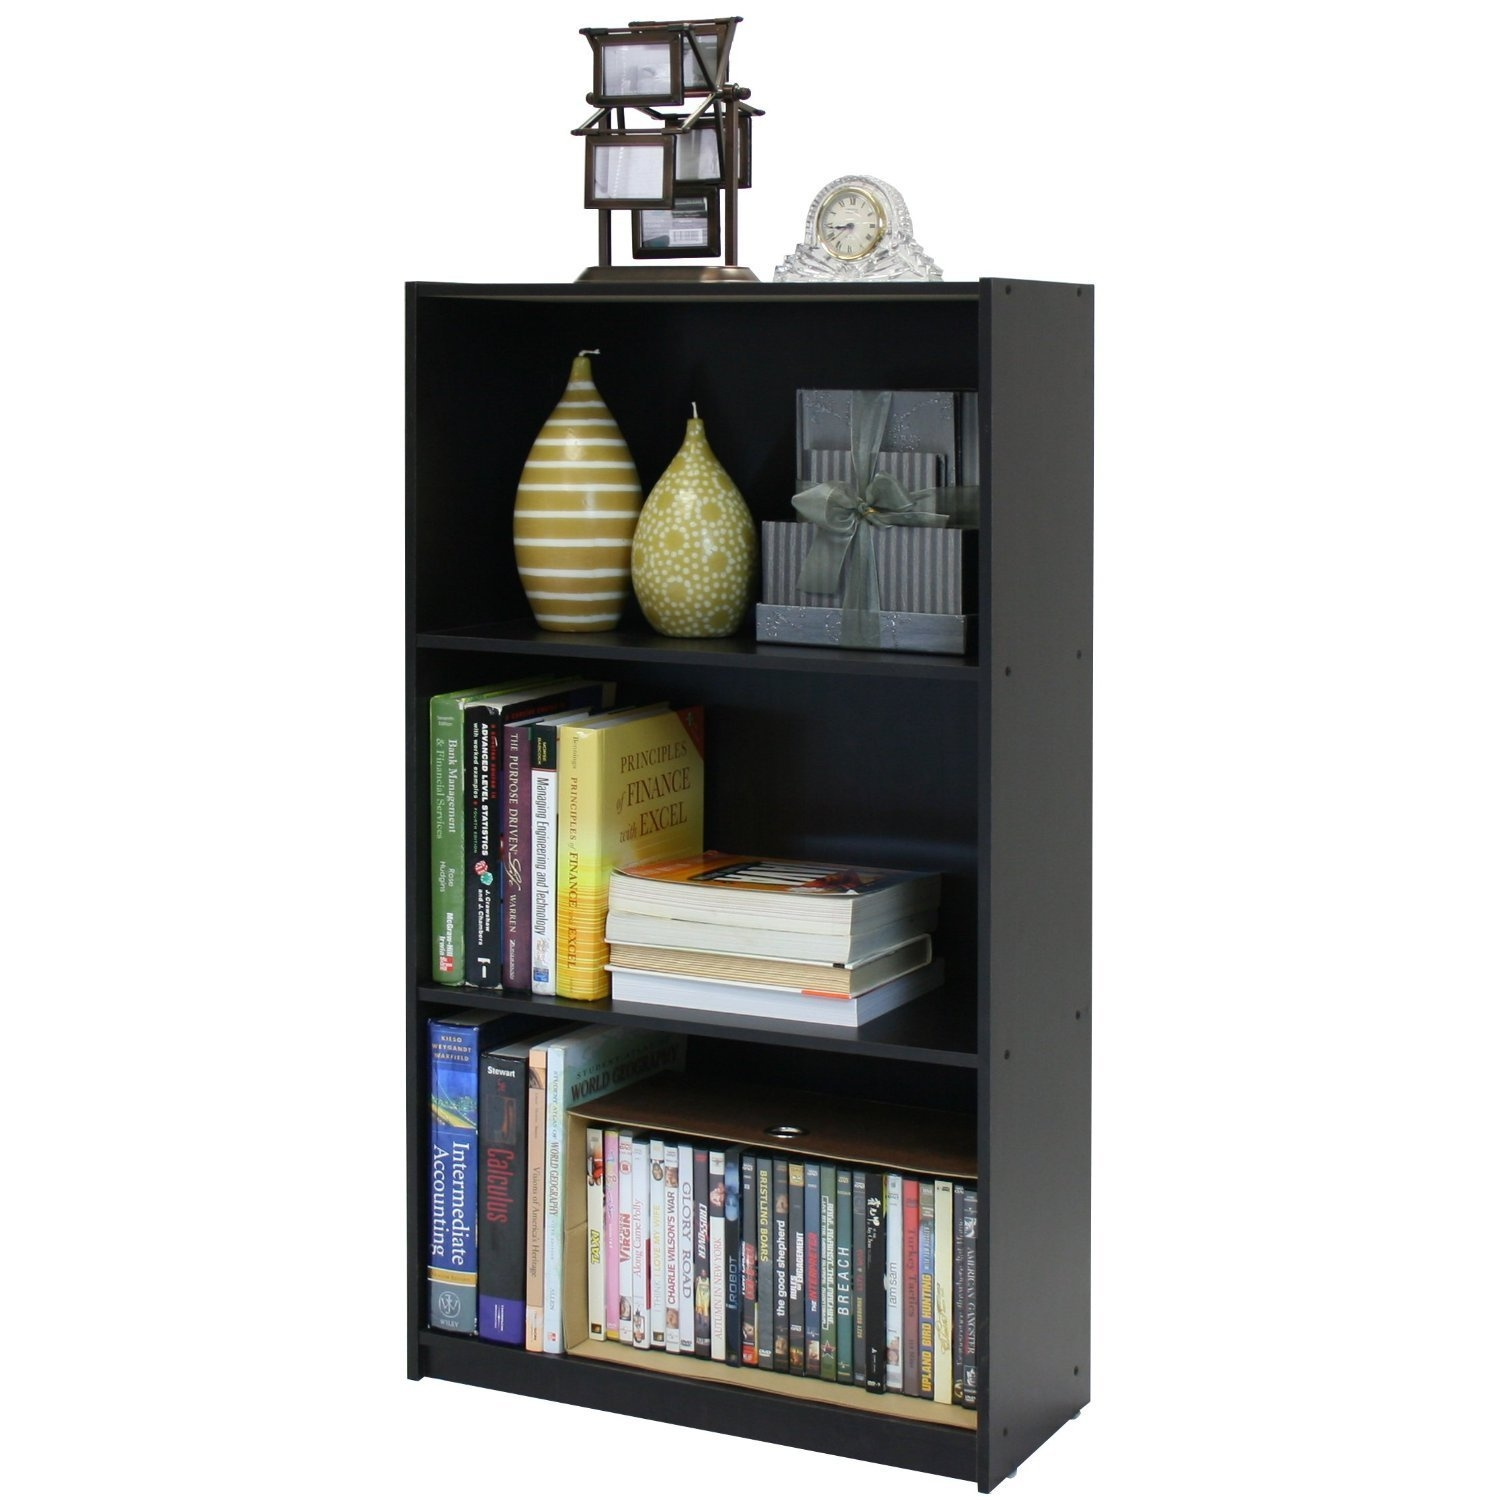 This 3-Tier Bookcase Storage Shelves in Espresso Finish is designed for casual and stylish look. The materials comply with e1 grade particle board for furniture. There is no foul smell of chemicals, durable and it is the most stable particleboard used to make rta furniture. Care instructions: wipe clean with clean damped cloth. Avoid using harsh chemicals. We are pleased to send you the replacement part free of charge. Pictures are for illustration purpose. All decor items are not included in this offer. Pictures are for illustration purpose. All decor items are not included in this offer.